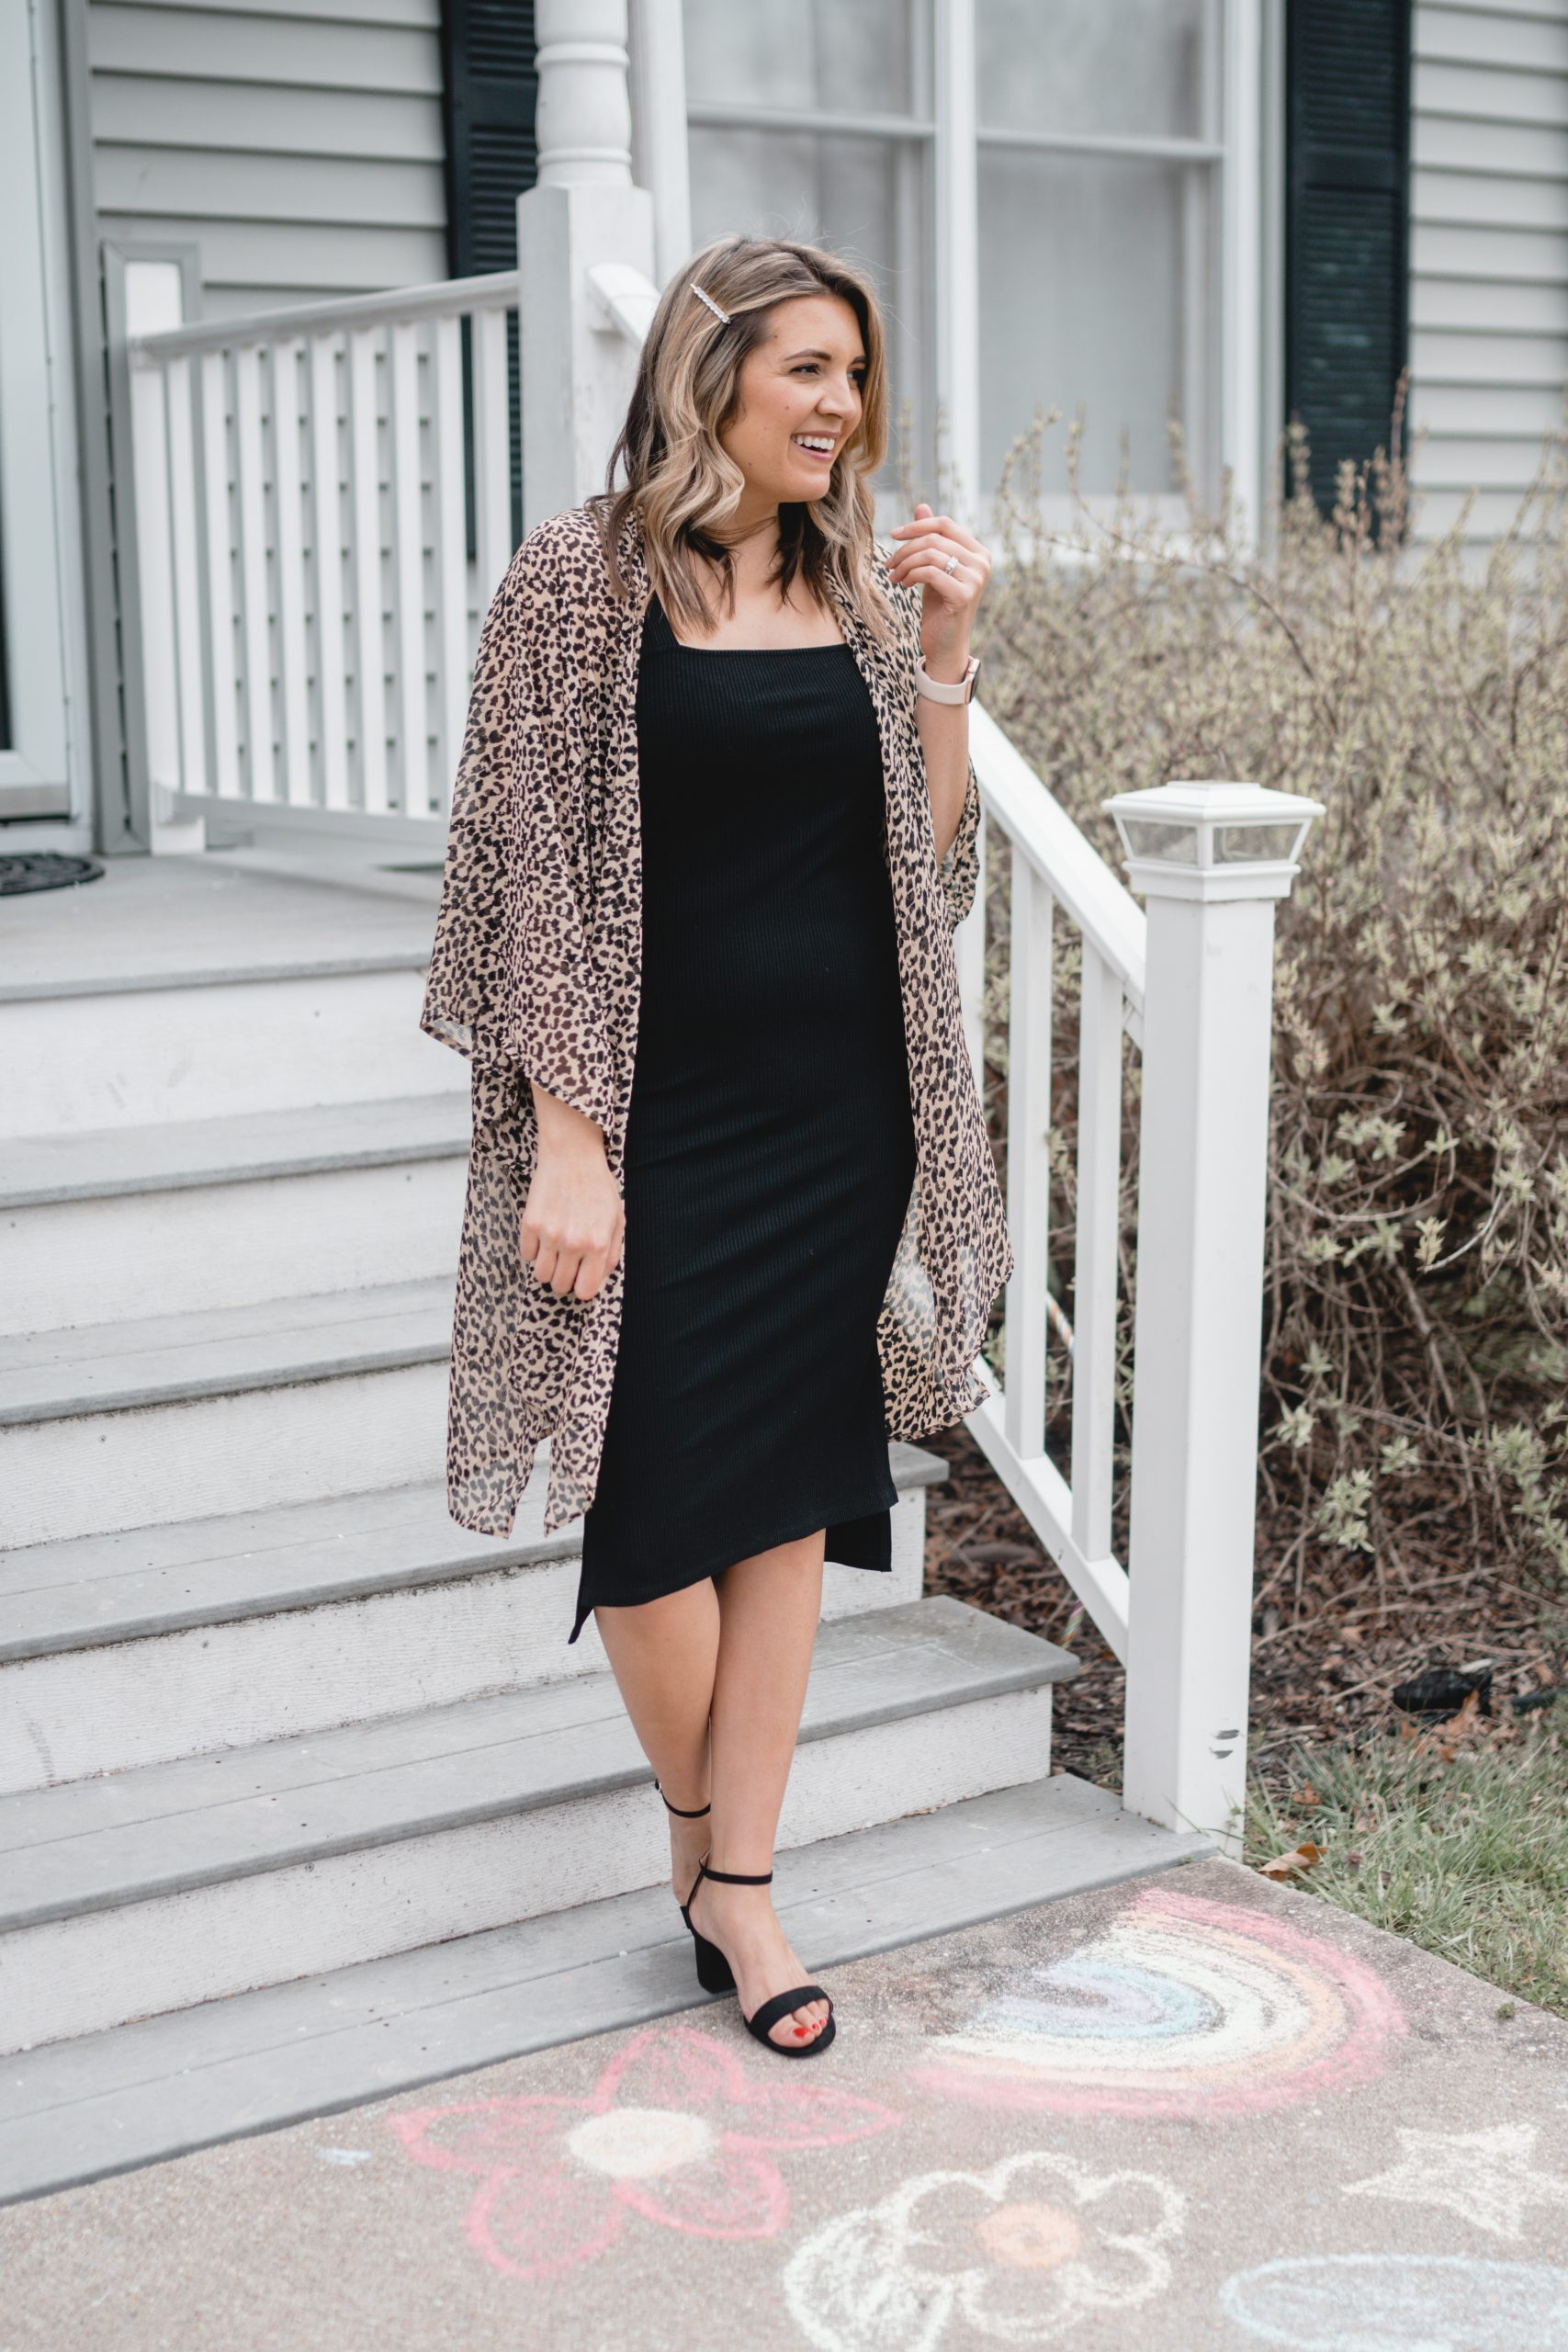 Virginia blogger, Lauren Dix, shares five new kimono outfits for spring! Casual to date night kimono outfits here!